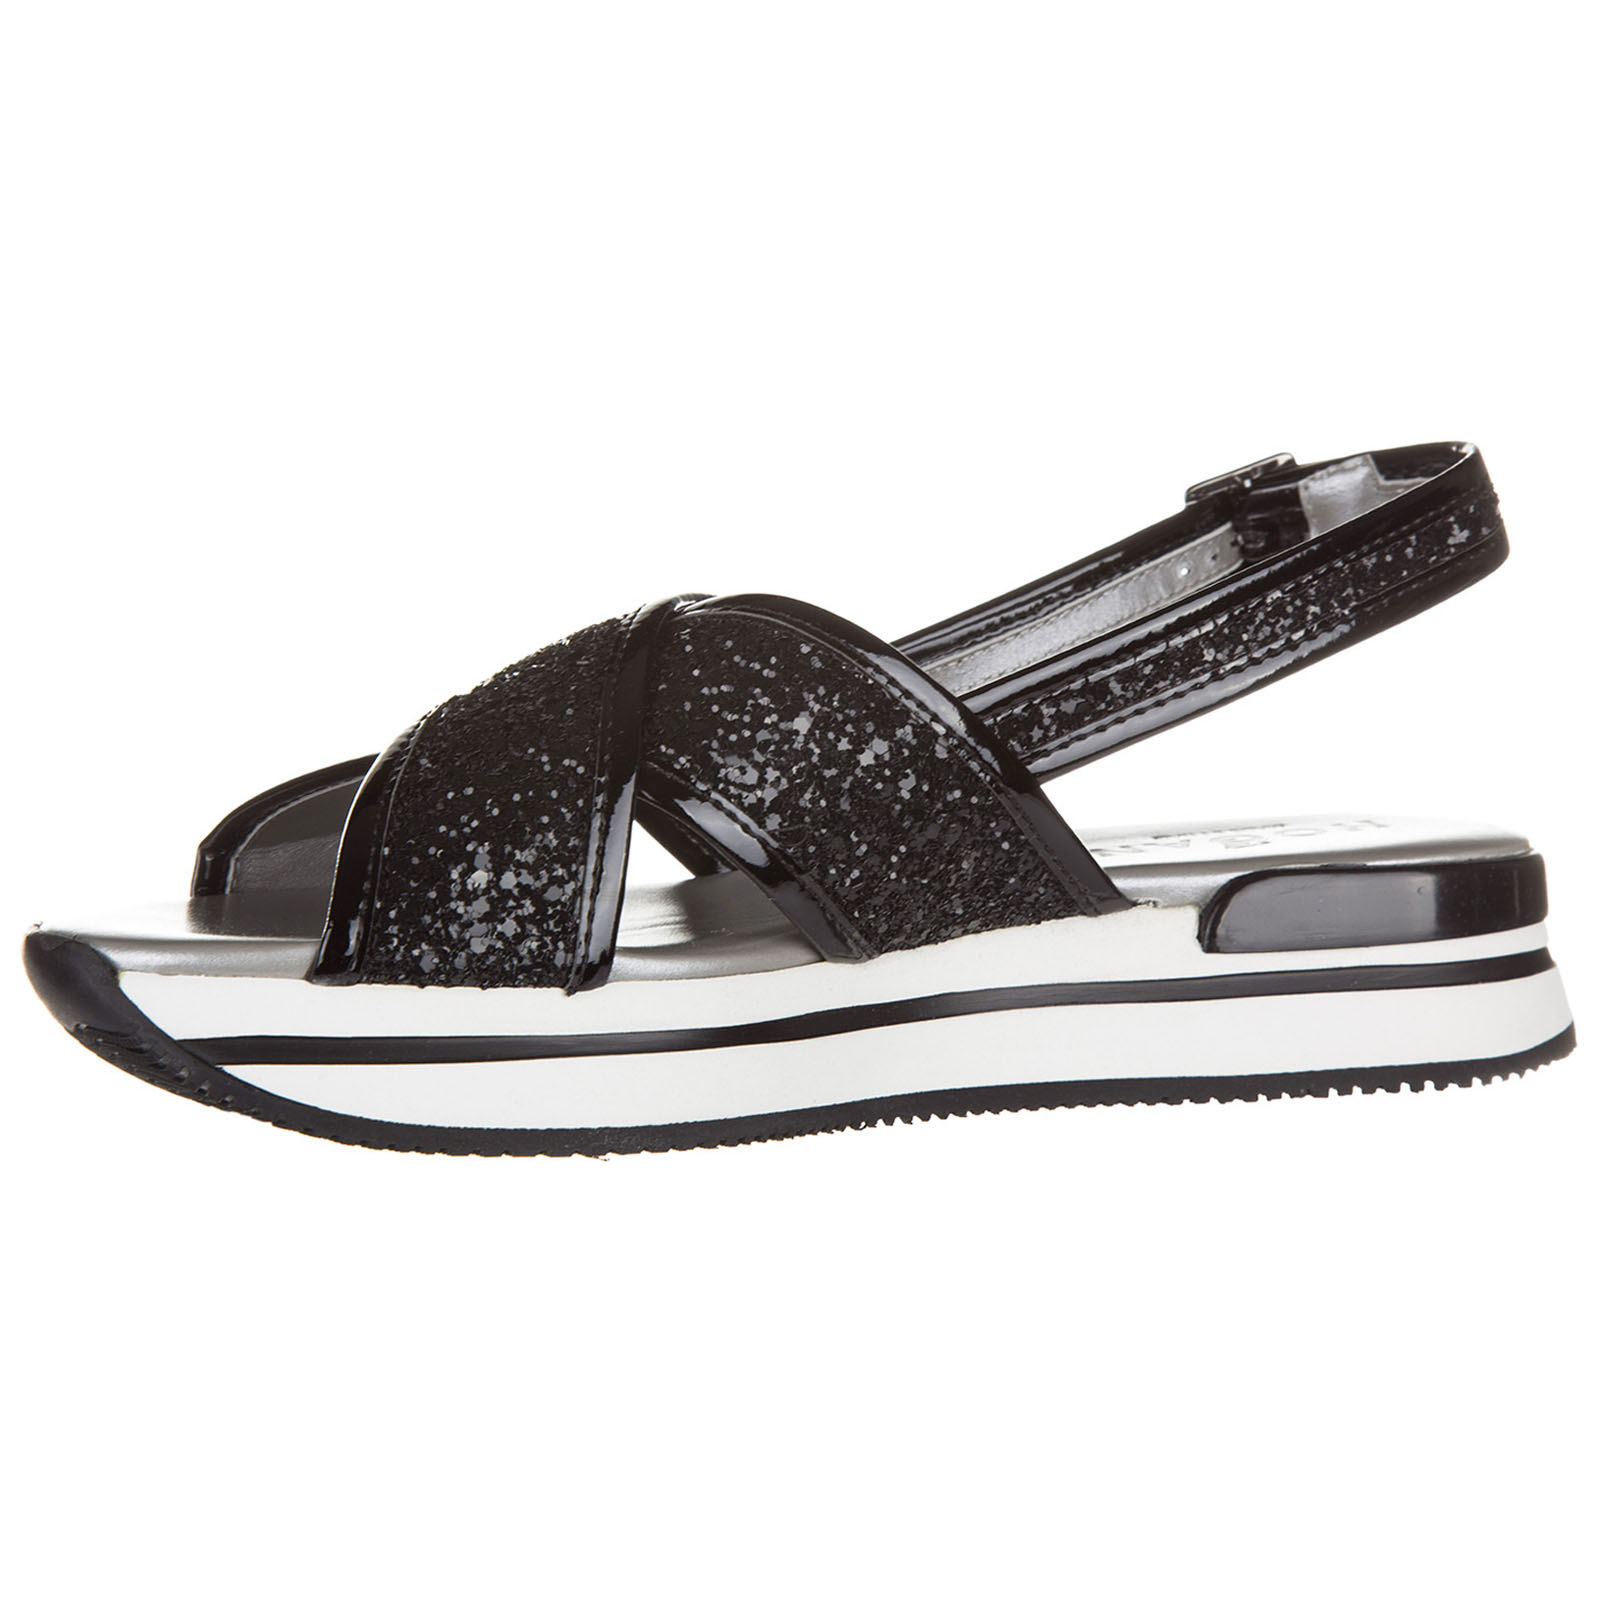 65887be5fc ... Women's leather sandals h257 glitter fasce incrociate ...